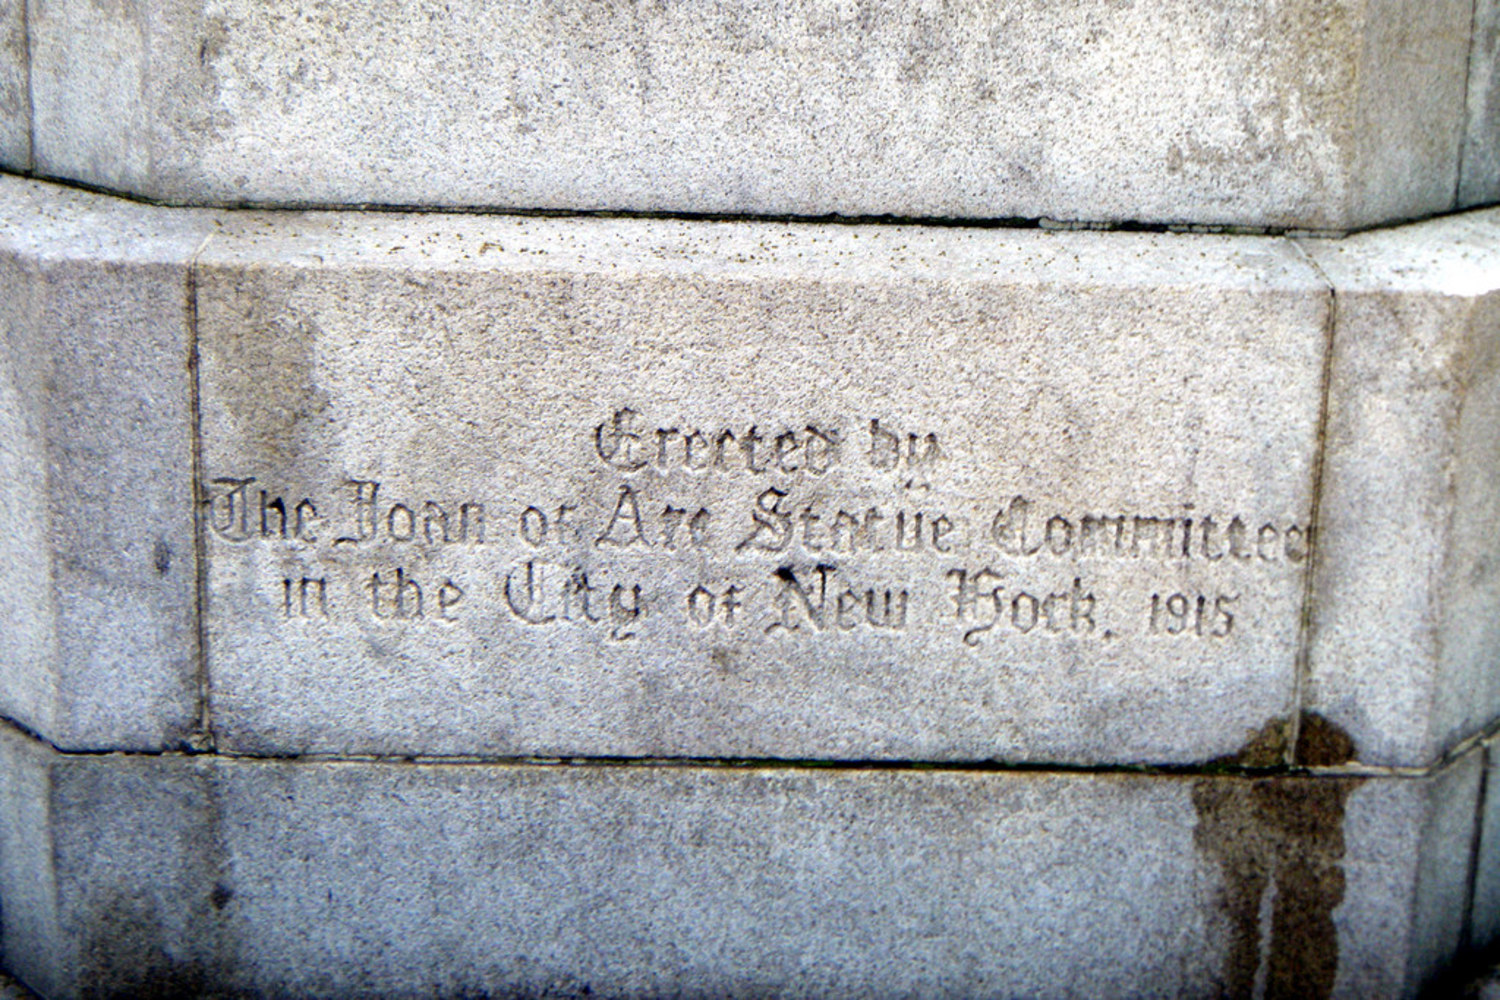 """JOAN OF ARC STATUE COMMITTEE   ERECTED BY     THE JOAN OF ARC STATUE COMMITTEE    IN THE CITY OF NEW YORK 1915.   Joan of Arc Island - Riverside Park - 93rd Street & Riverside Drive in Manhattan, New York City - <a href=""""http://maps.google.com/maps?f=q&source=s_q&hl=en&geocode=&q=93rd+Street+&+Riverside+Drive+Manhattan,+New+York+City+&sll=46.085154,0.908565&sspn=7.329362,19.753418&ie=UTF8&hq=&hnear=Riverside+Dr+&+W+93rd+St,+New+York,+10025&z=16"""" rel=""""nofollow"""">Google Map</a> - <a href=""""http://www.flickr.com/photos/sheenachi/tags/joanofarcisland/"""">additional views</a>"""